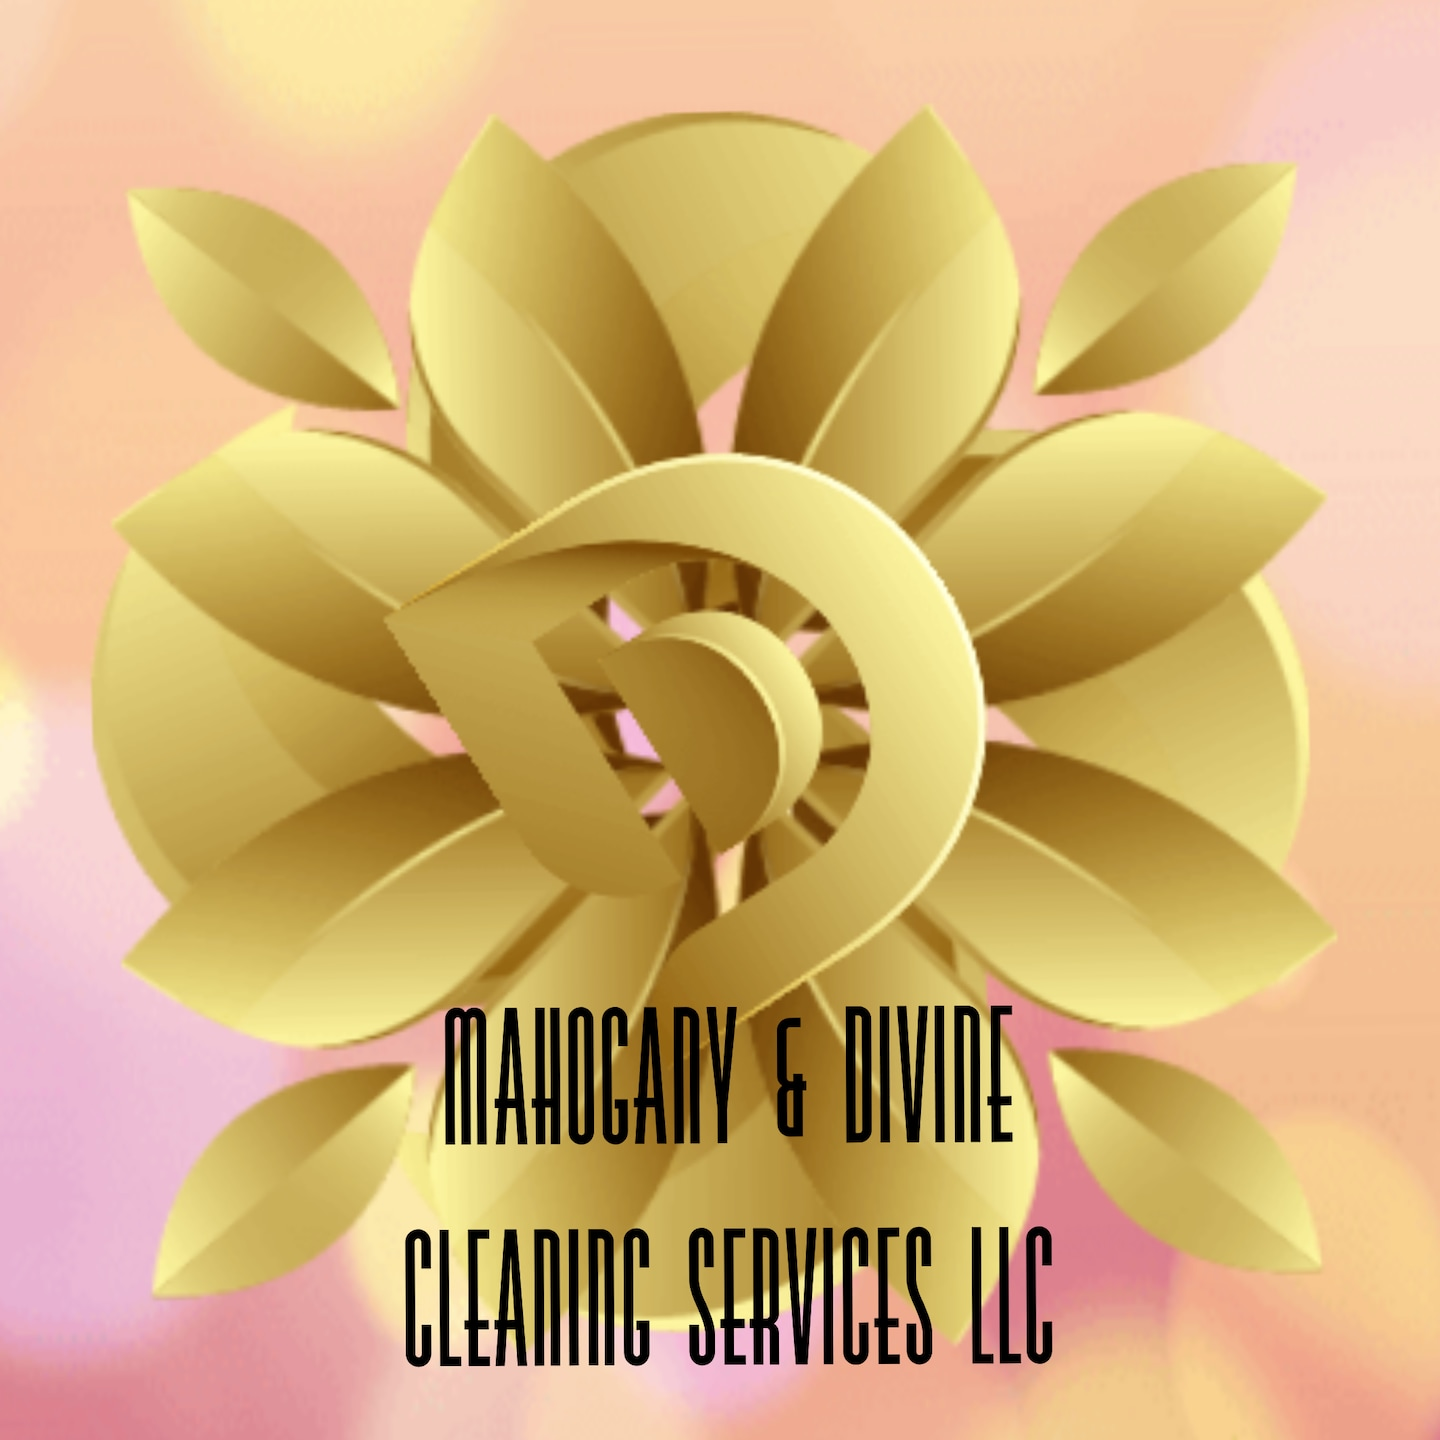 Mahogany & Divinie Cleaning Services LLC